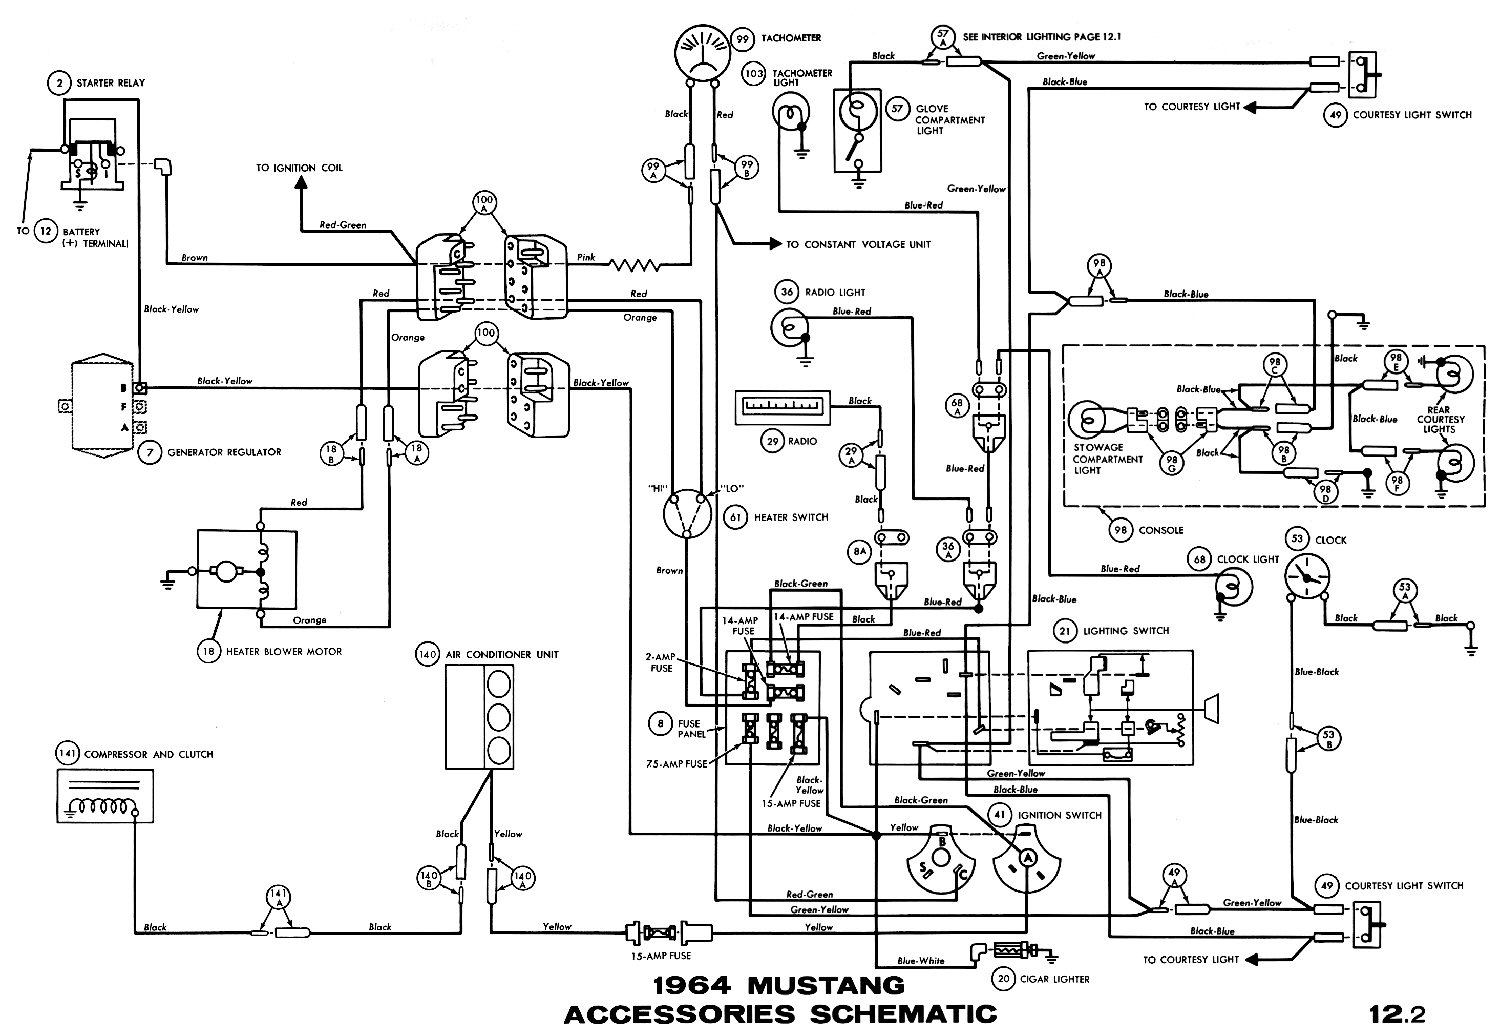 1964m 66 mustang wiring diagram radio tape 66 mustang fuse diagram 1969 mustang wiring harness diagram at alyssarenee.co